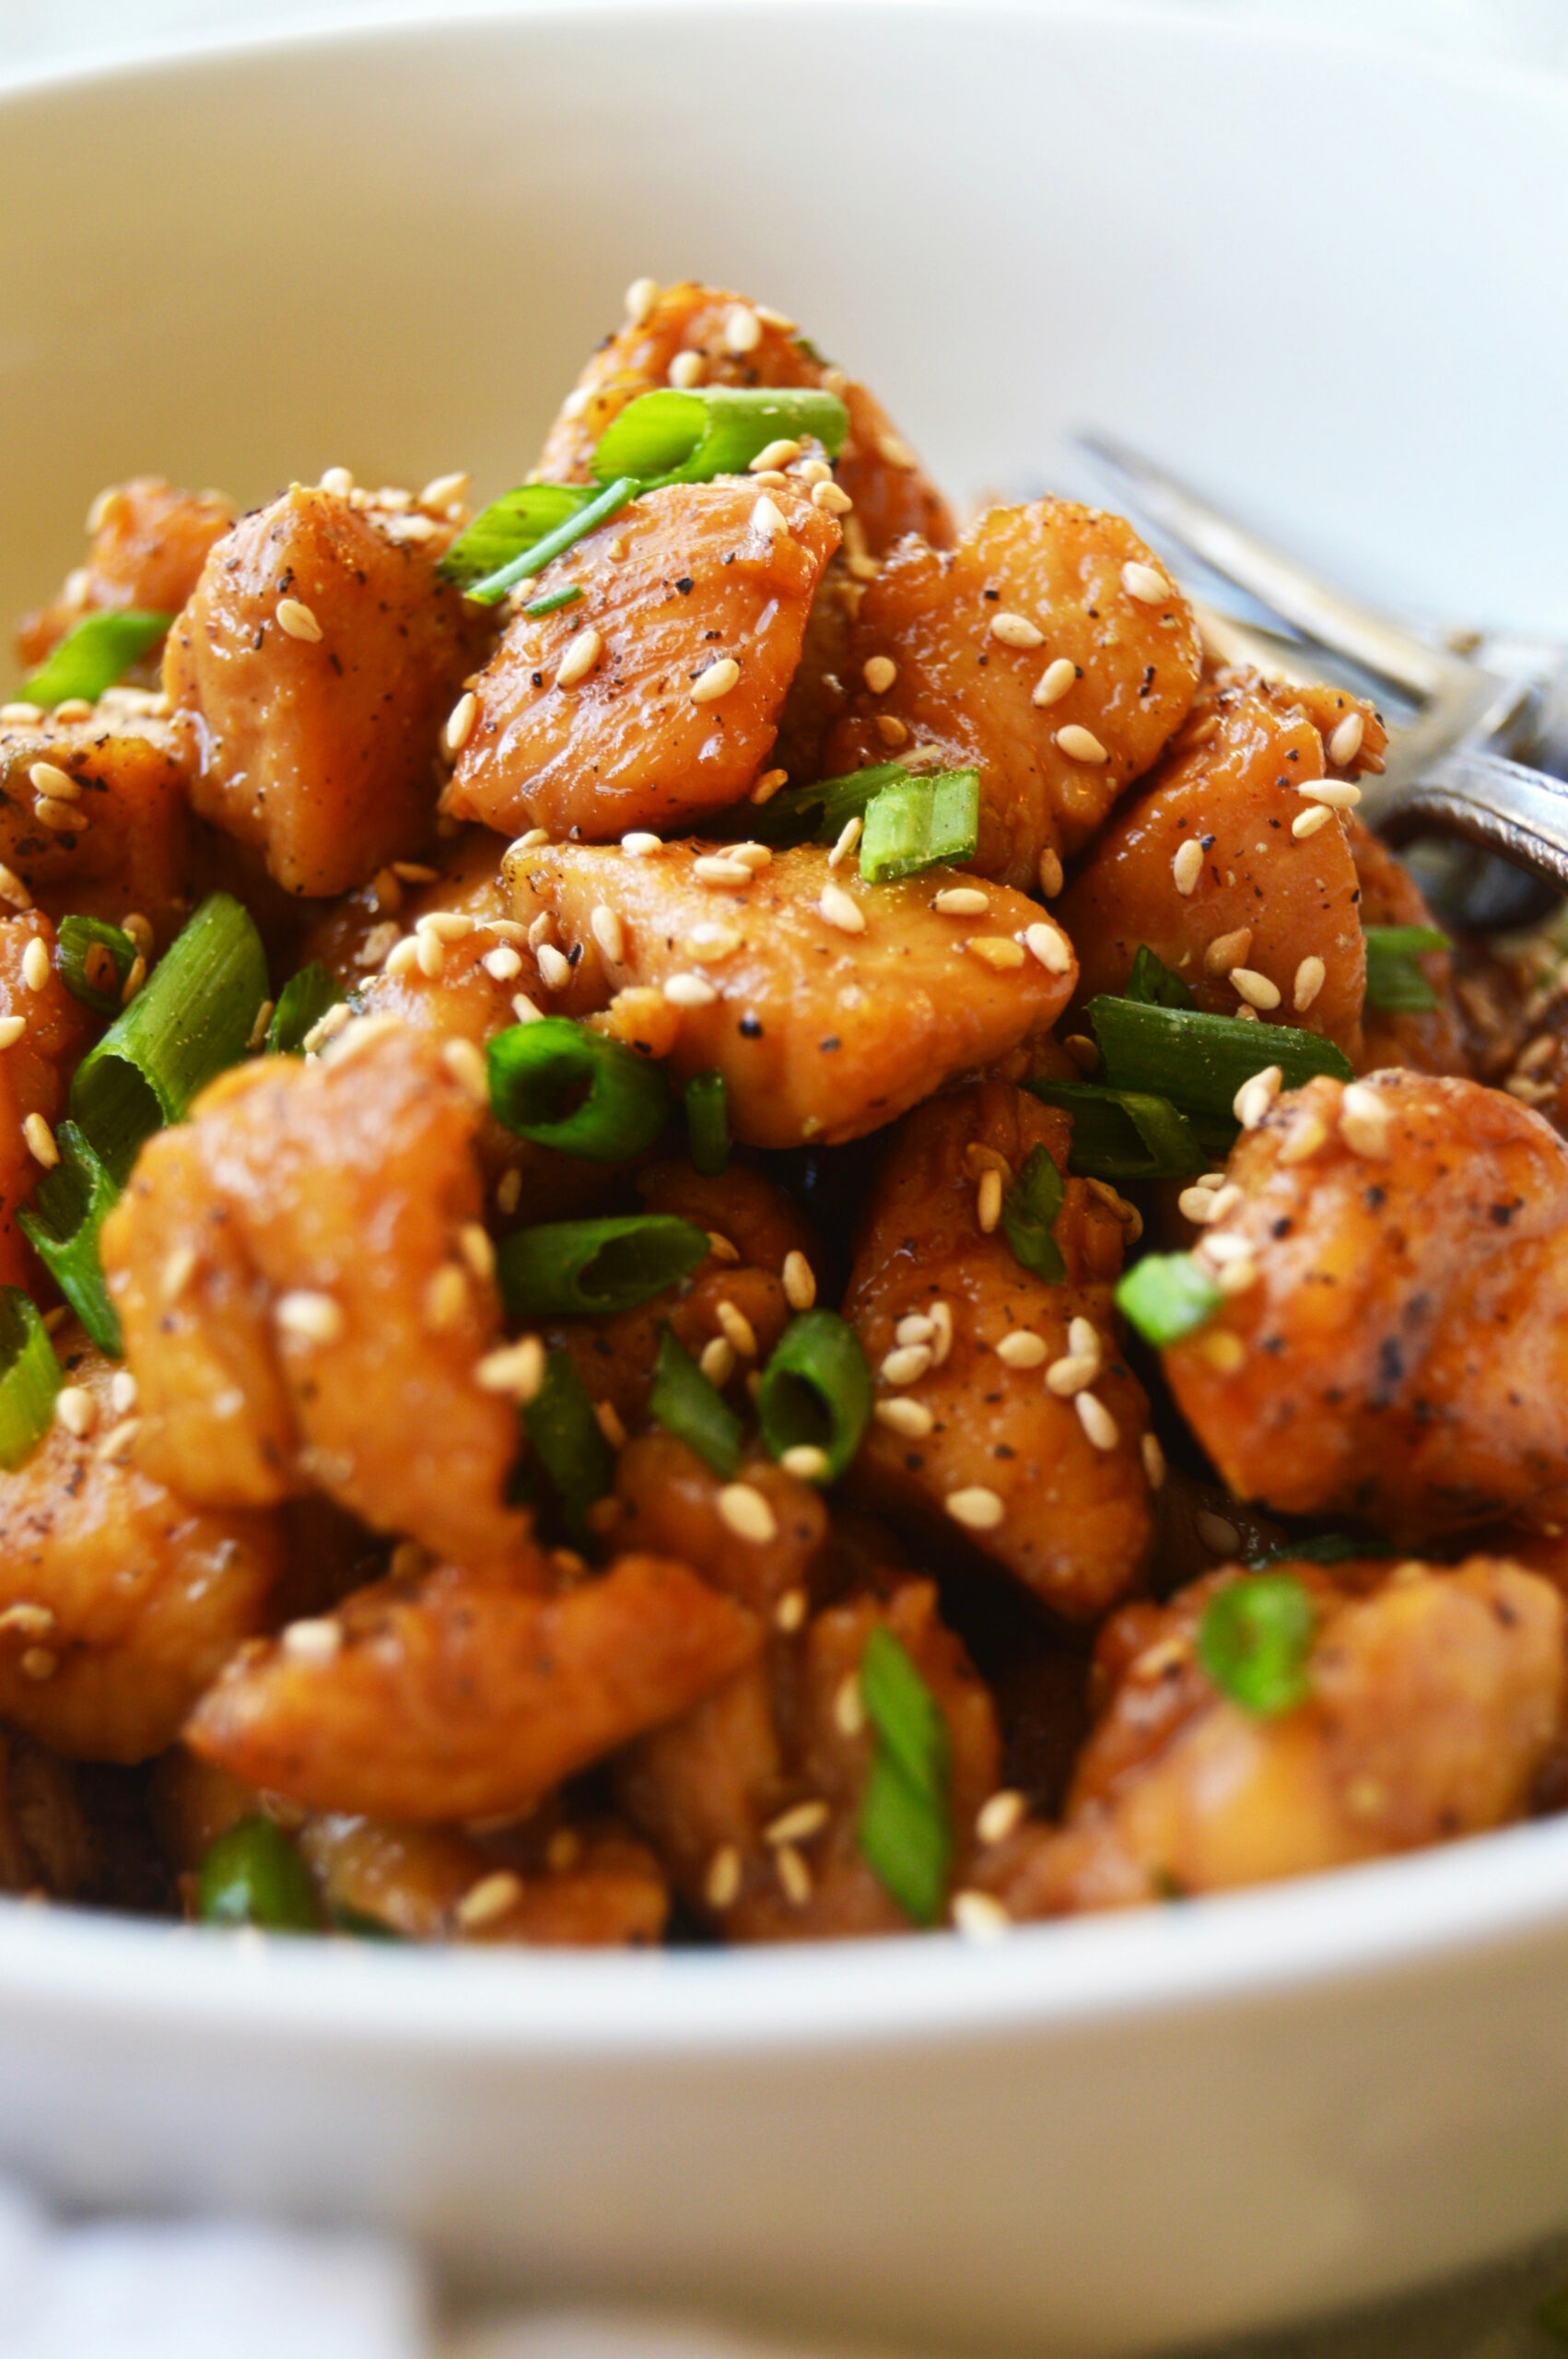 Quick and Simple 5 Ingredient Teriyaki Chicken - recipes quick and easy chicken